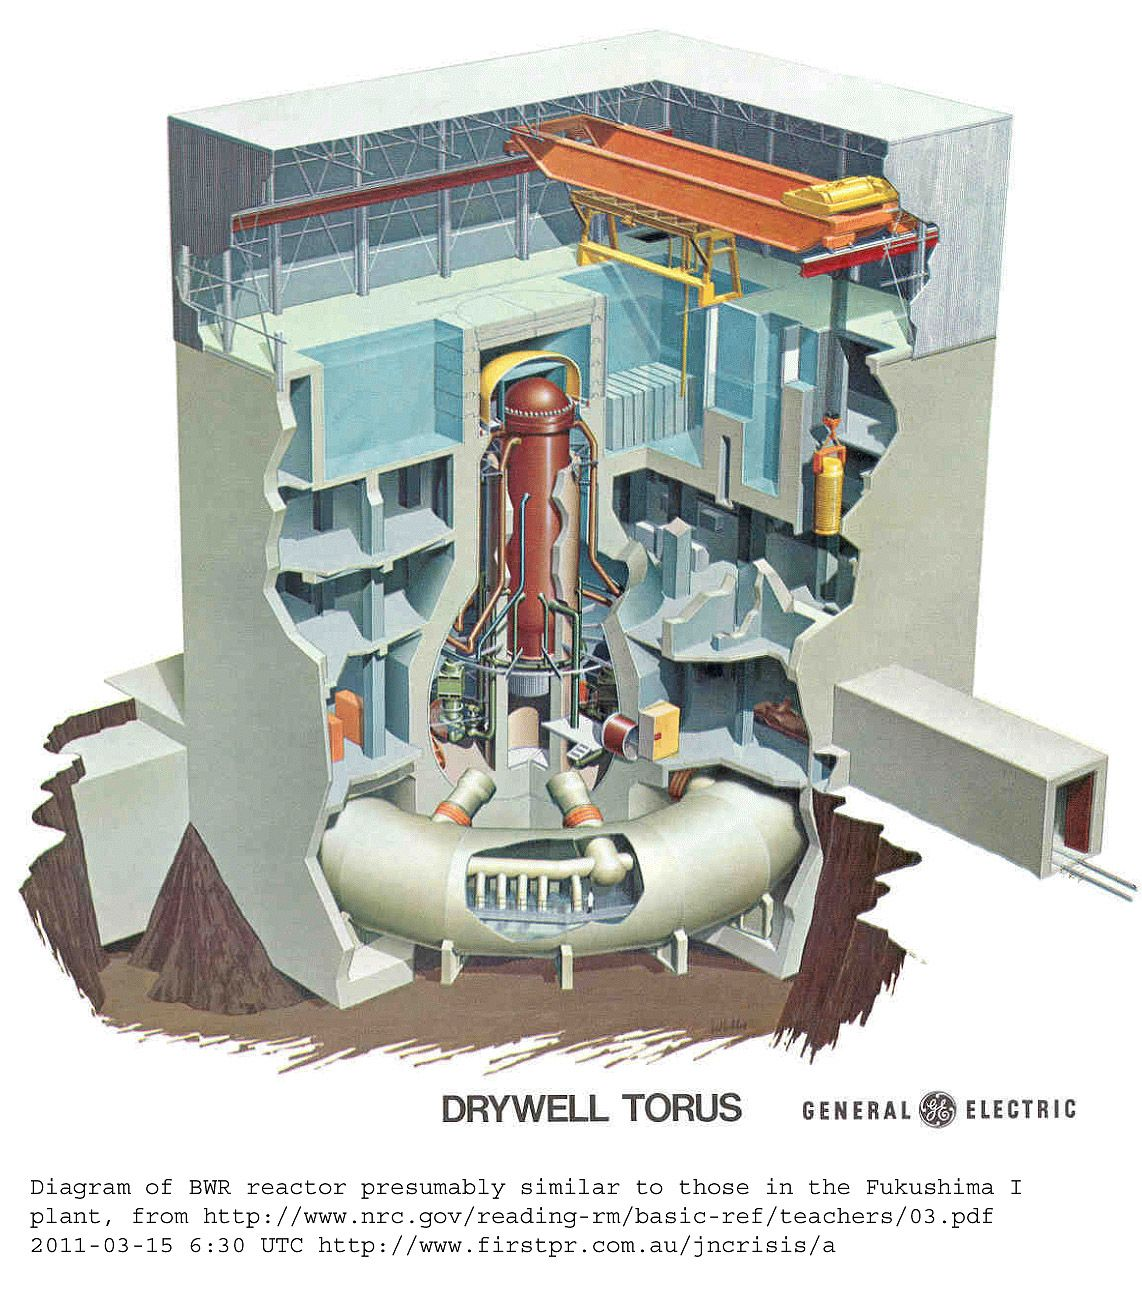 Reactor cutaway diagrams google search reactors pinterest reactor cutaway diagrams google search ccuart Image collections